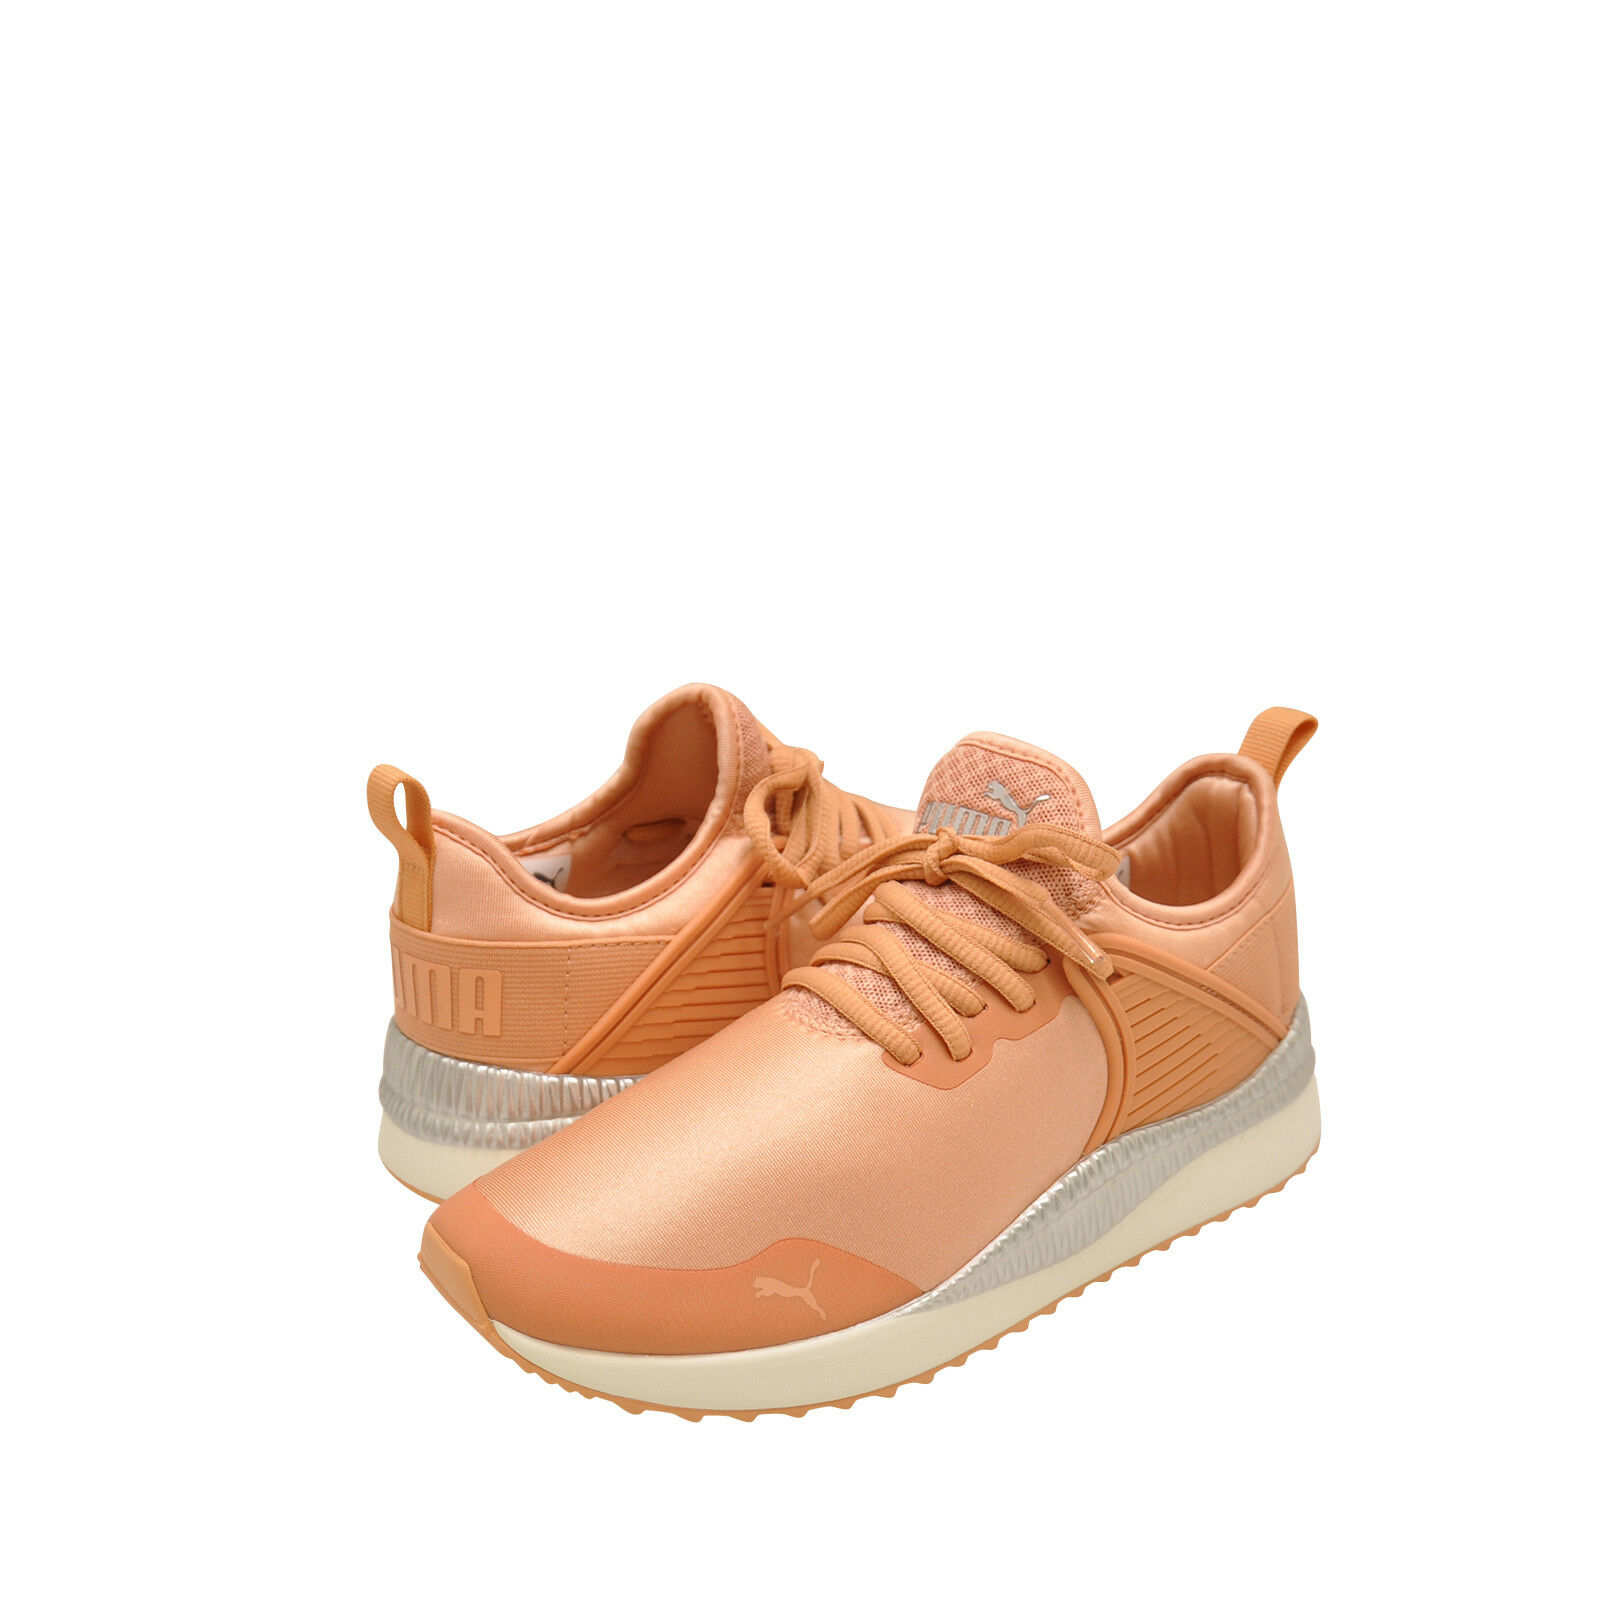 Women's Shoes PUMA Pacer Next Cage ST2 Sneaker 367660-01 Dusty Coral White NEW Seasonal price cuts, discount benefits